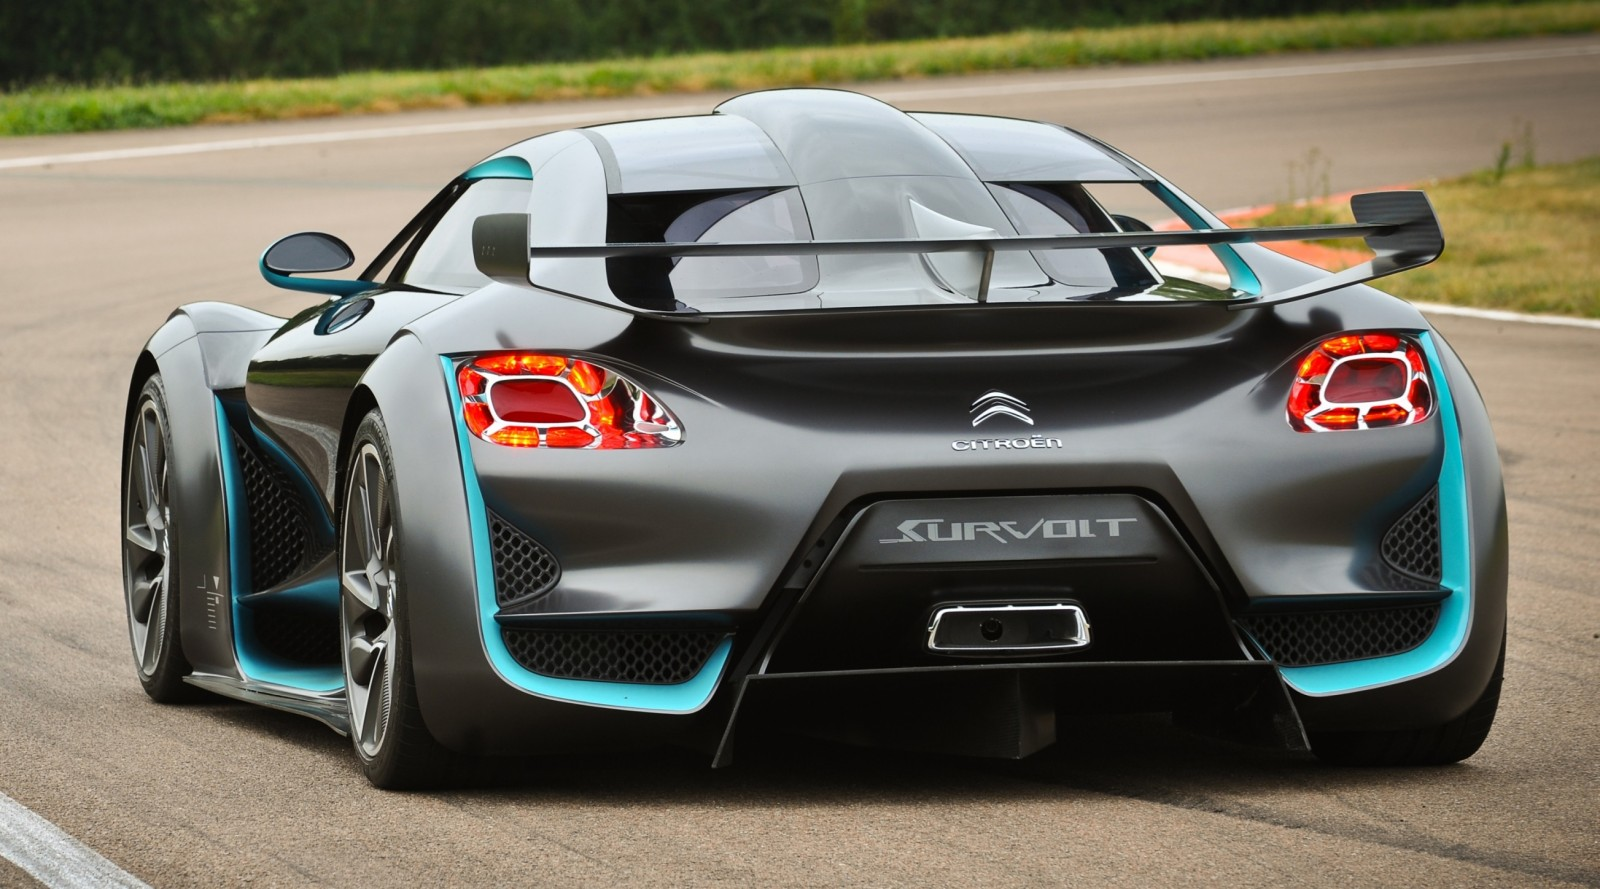 Concept Flashback - 2010 Citroen Survolt 108